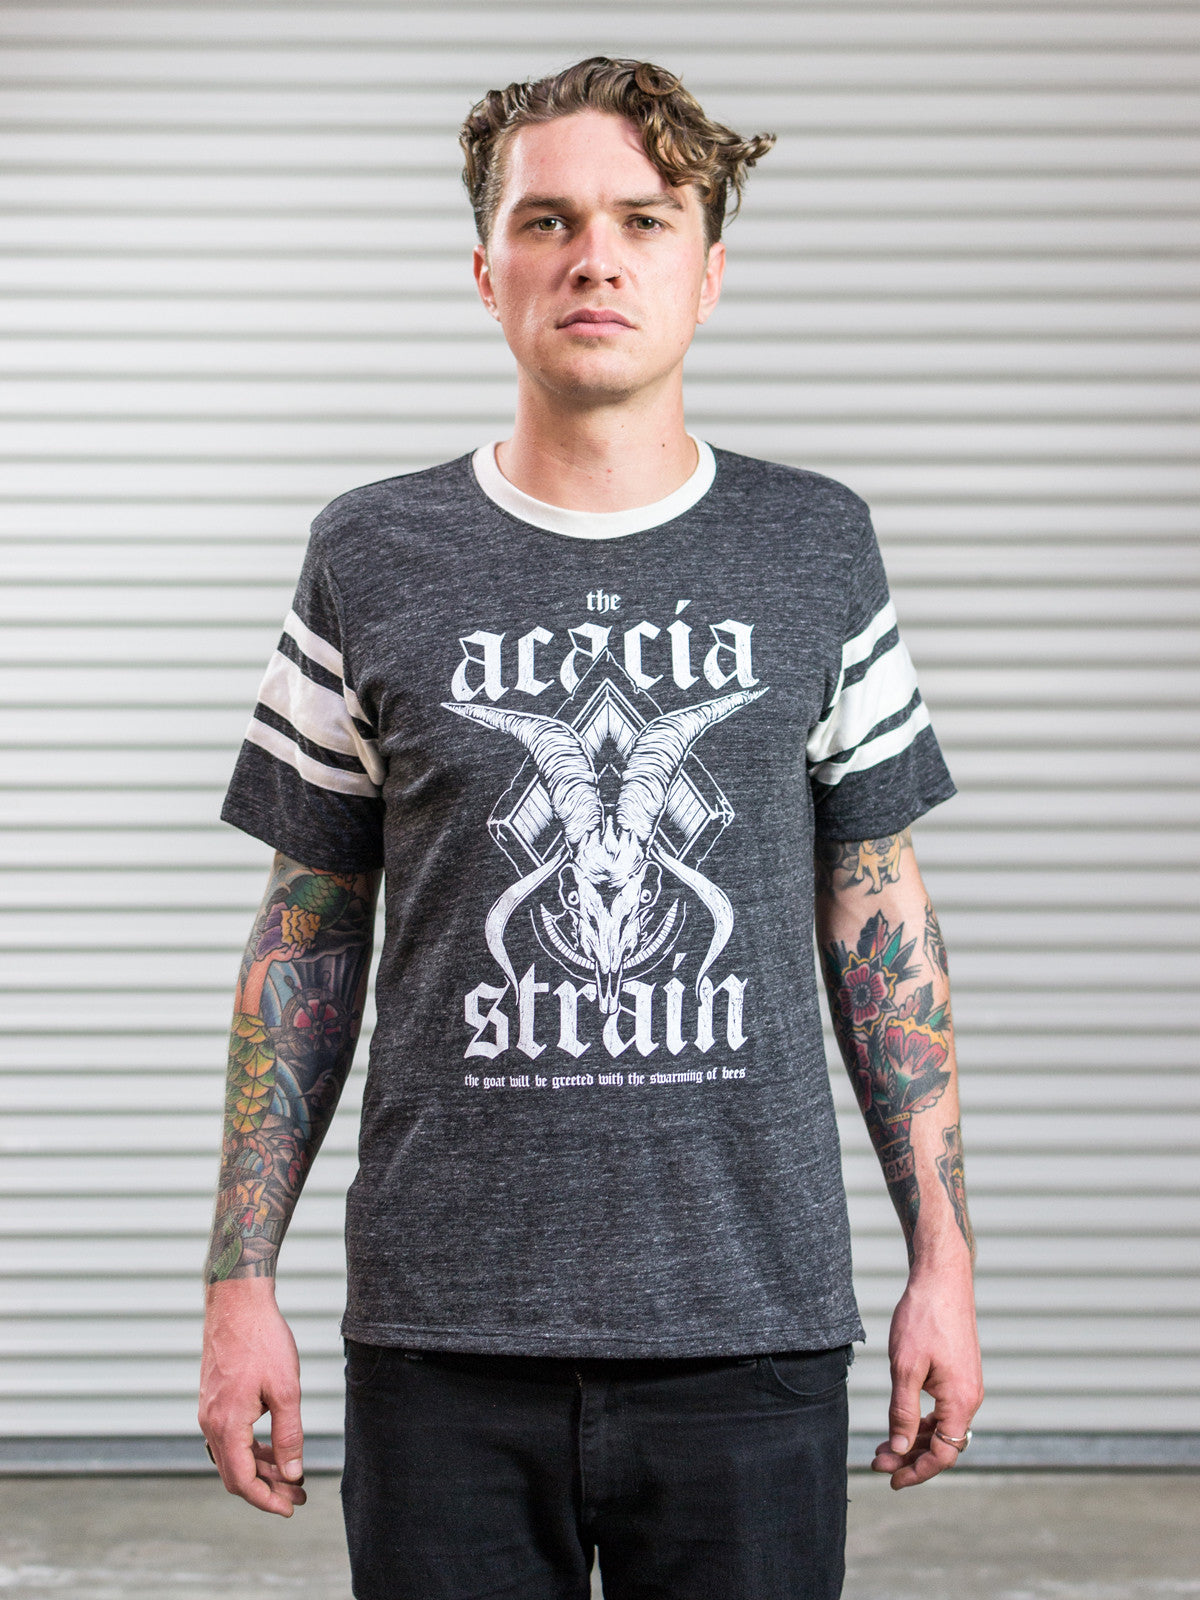 The Acacia Strain - Goat Shirt - MerchLimited - 1